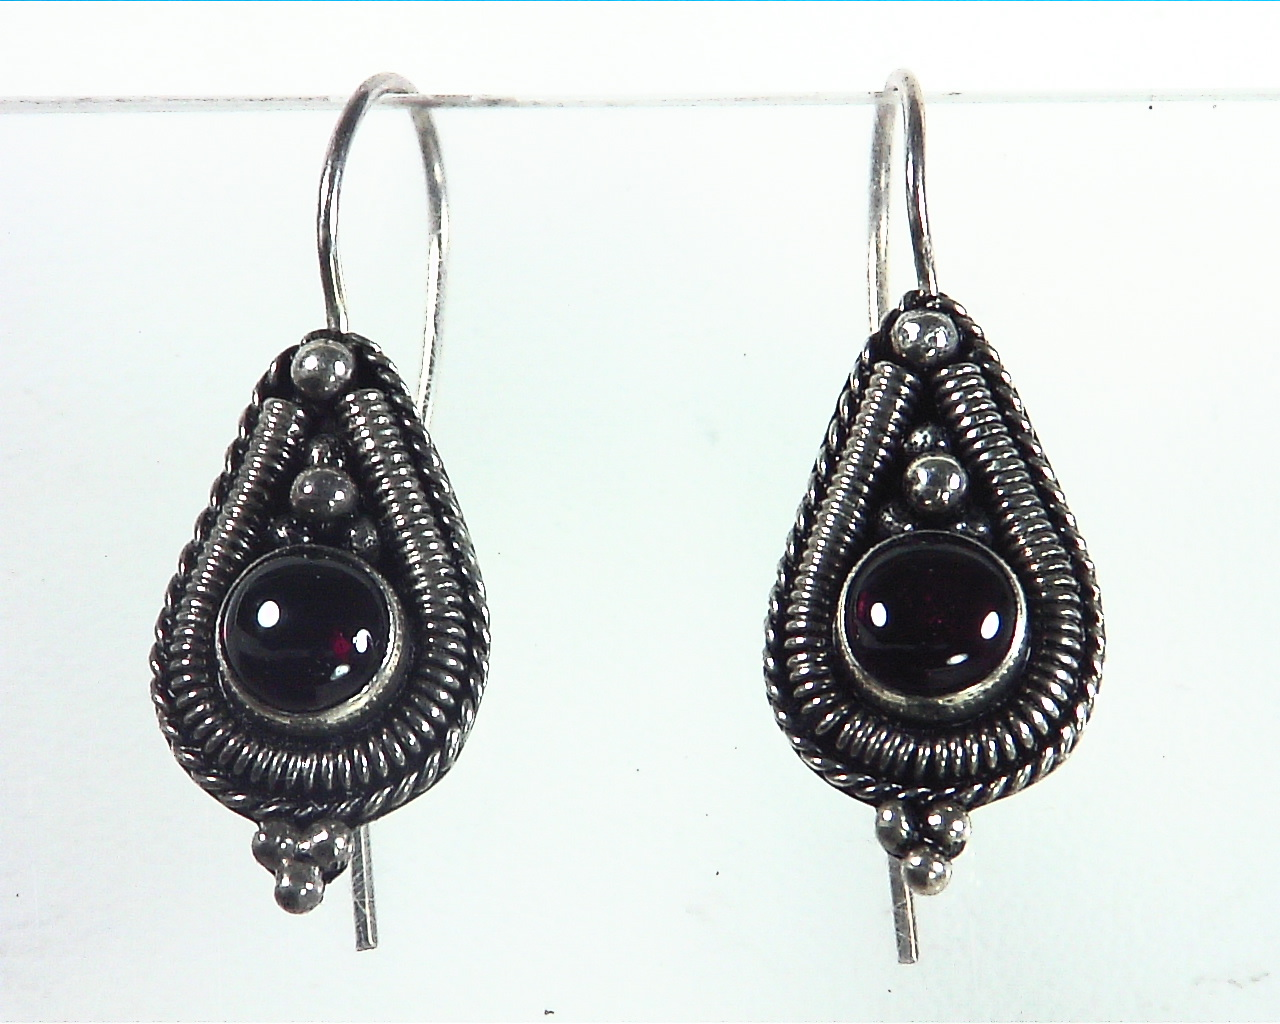 Garnet Cabasson Set in Sterling Silver Earring, 848